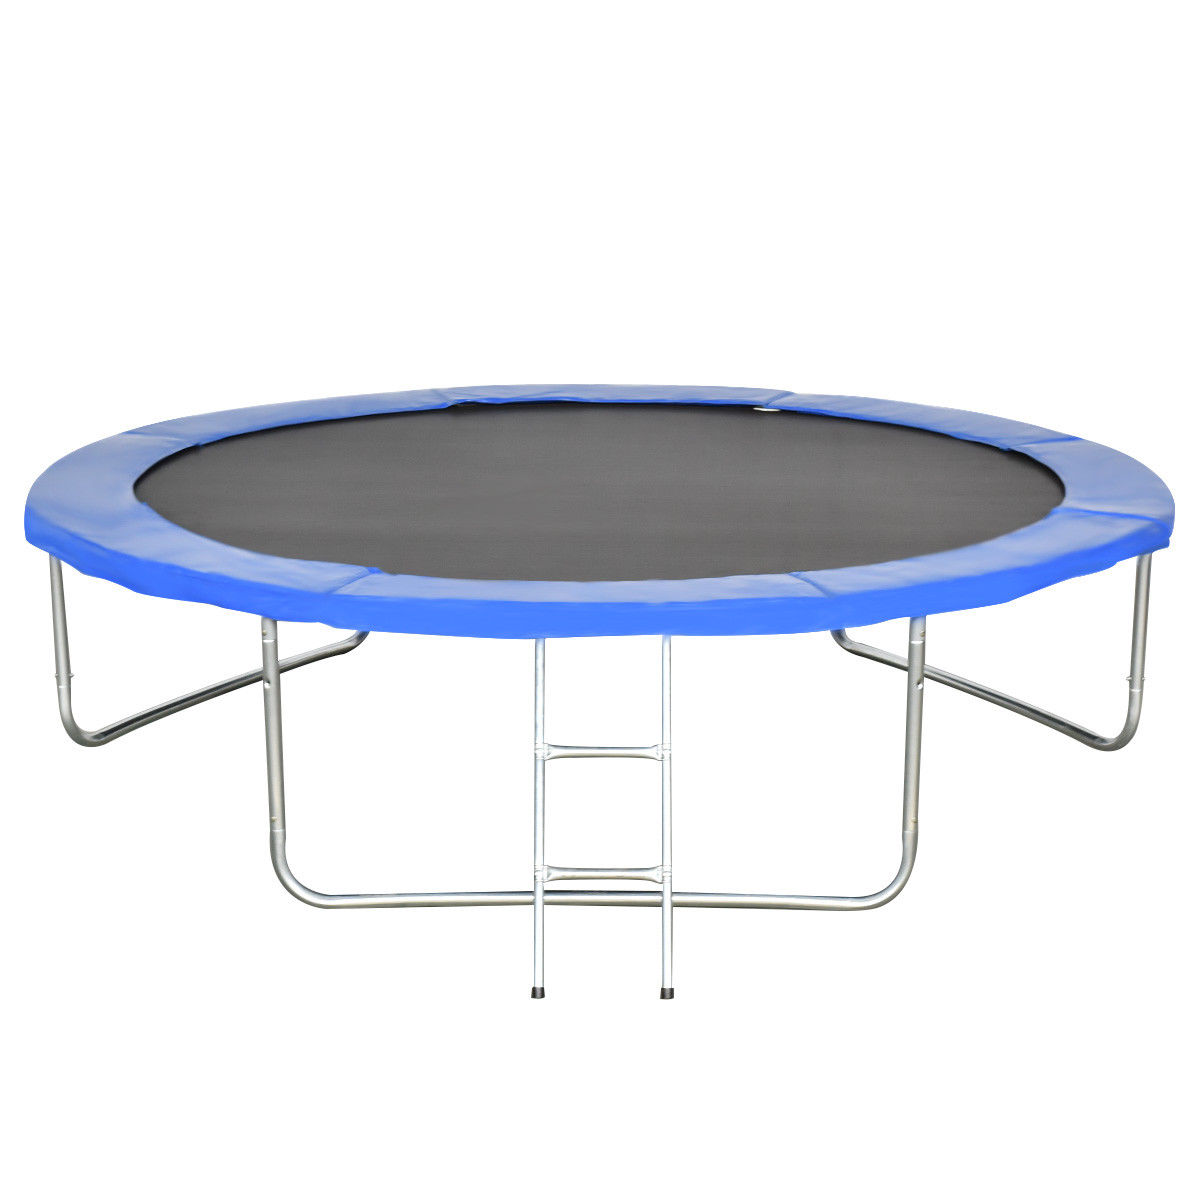 Gymax 10 FT Trampoline Combo Bounce Jump Safety Enclosure Net W/Spring Pad Ladder - image 6 of 10